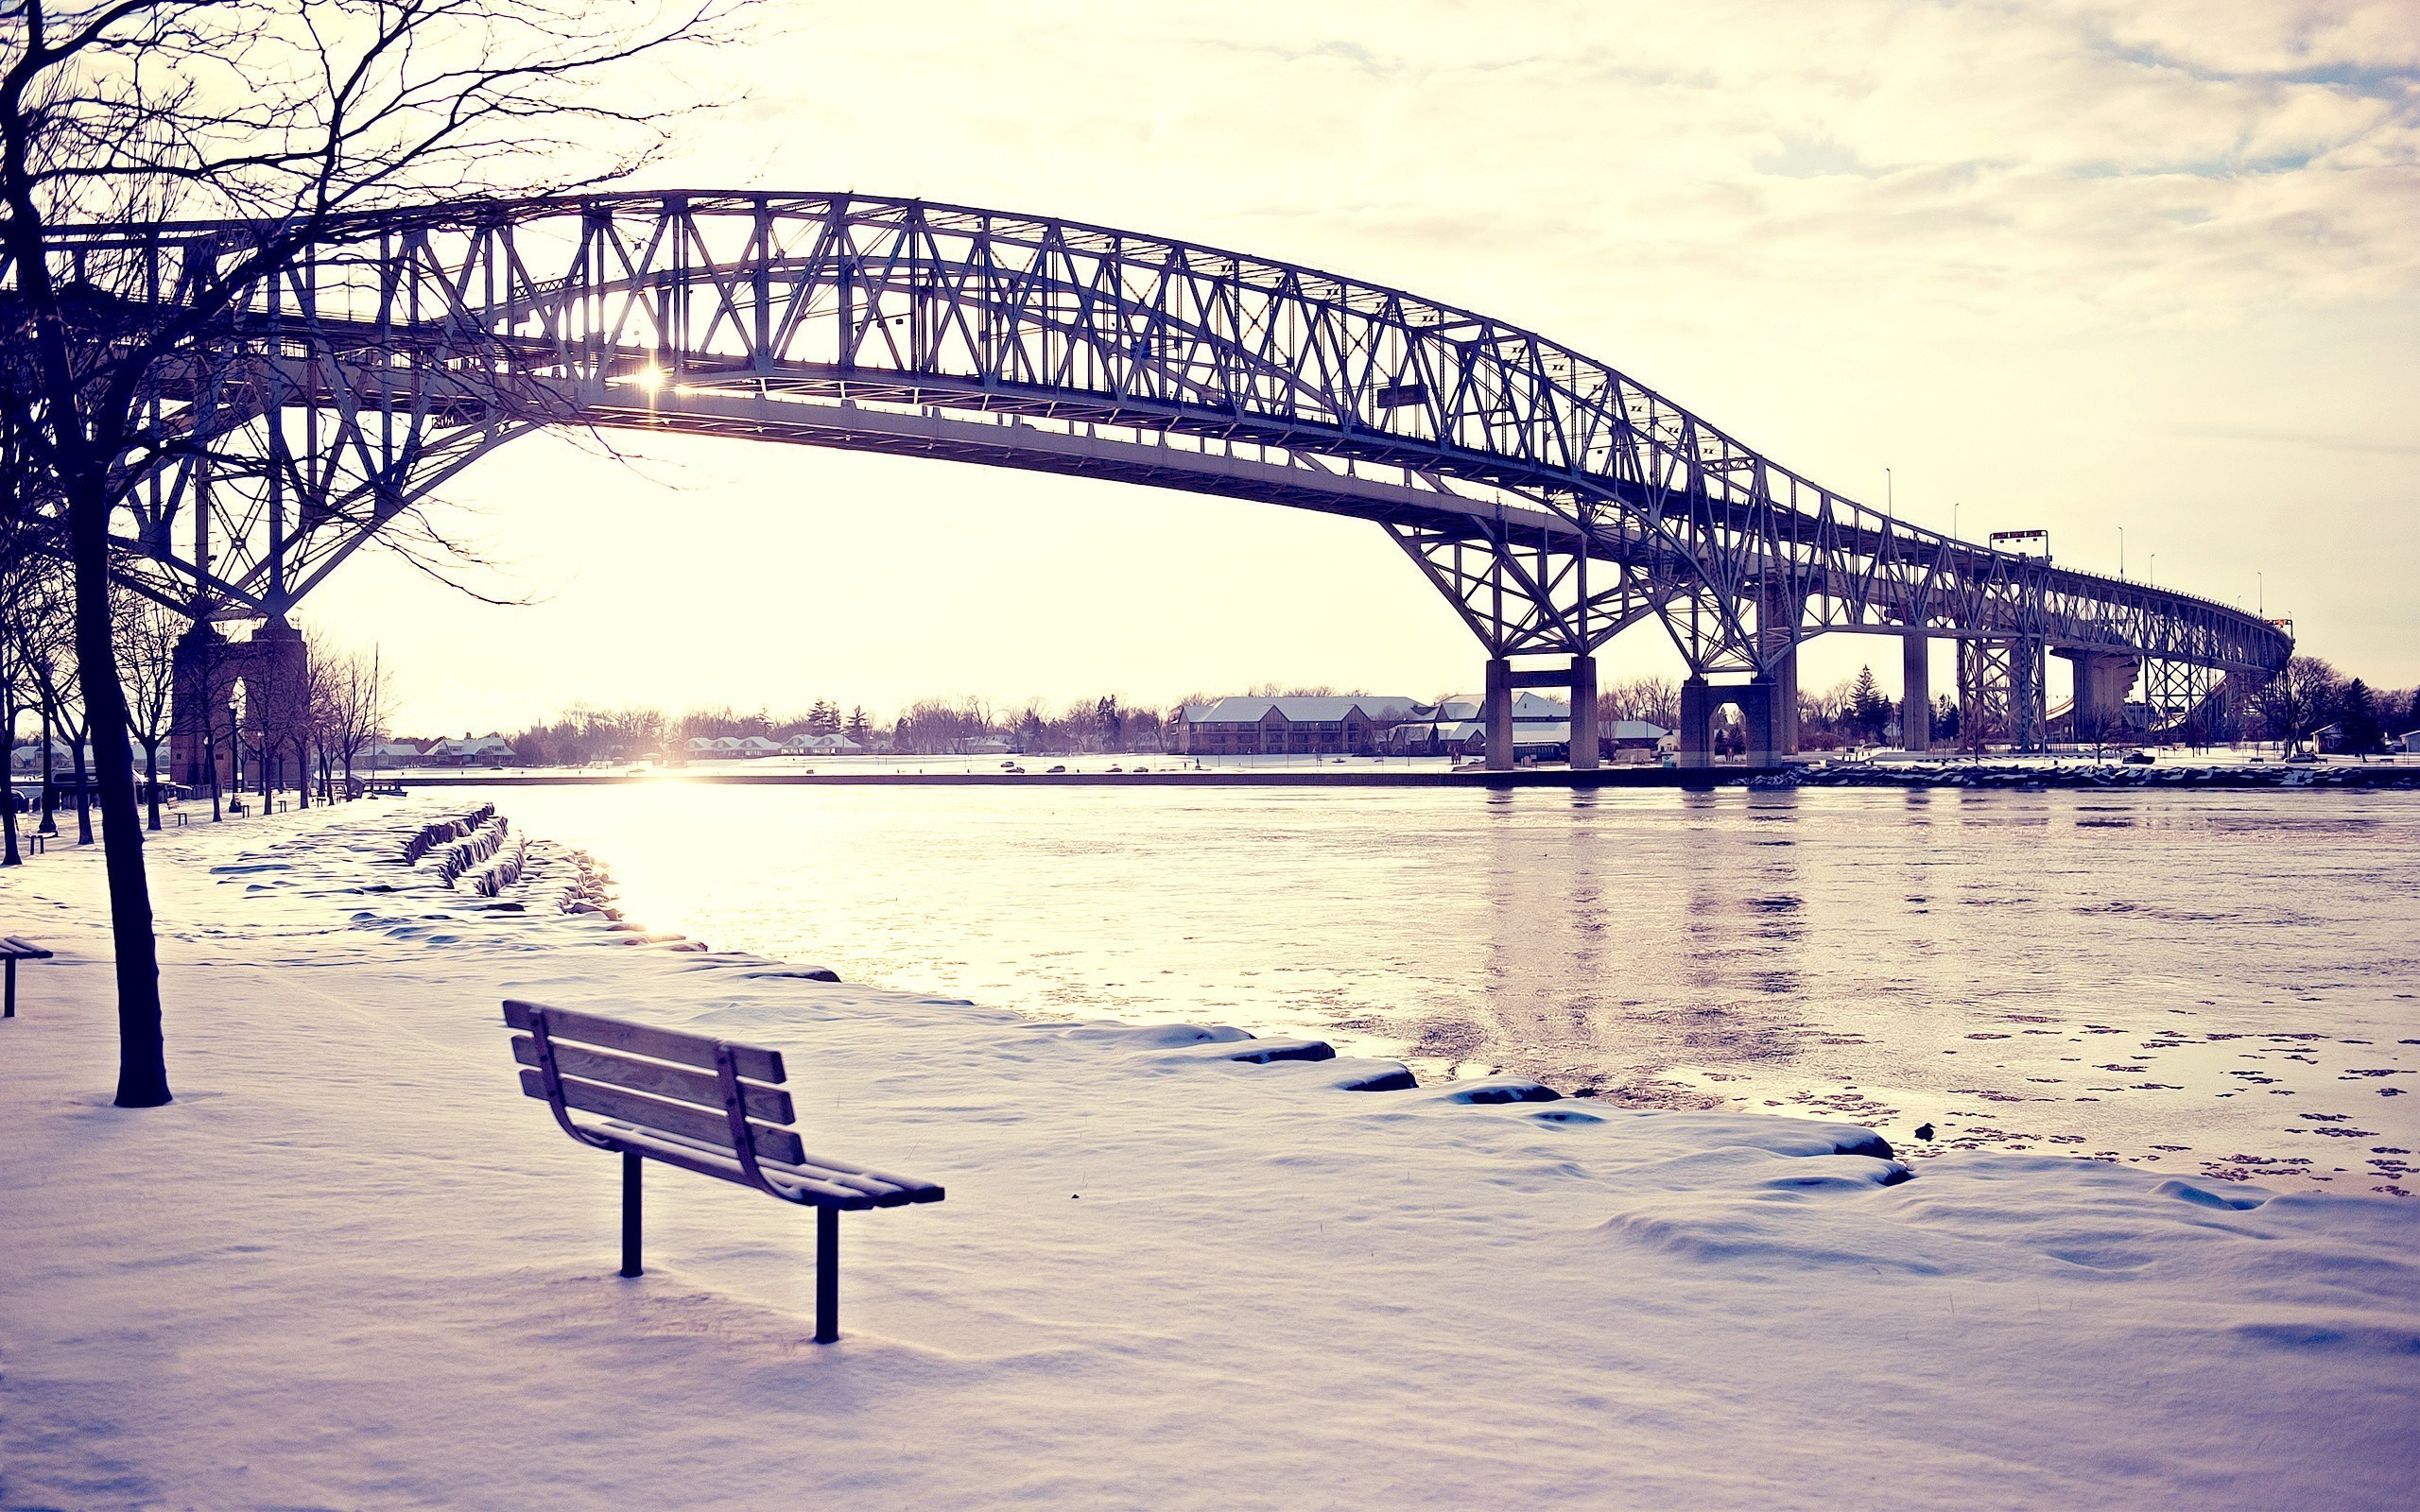 bridge, Bench, Snow, Lake Wallpapers HD / Desktop and Mobile Backgrounds